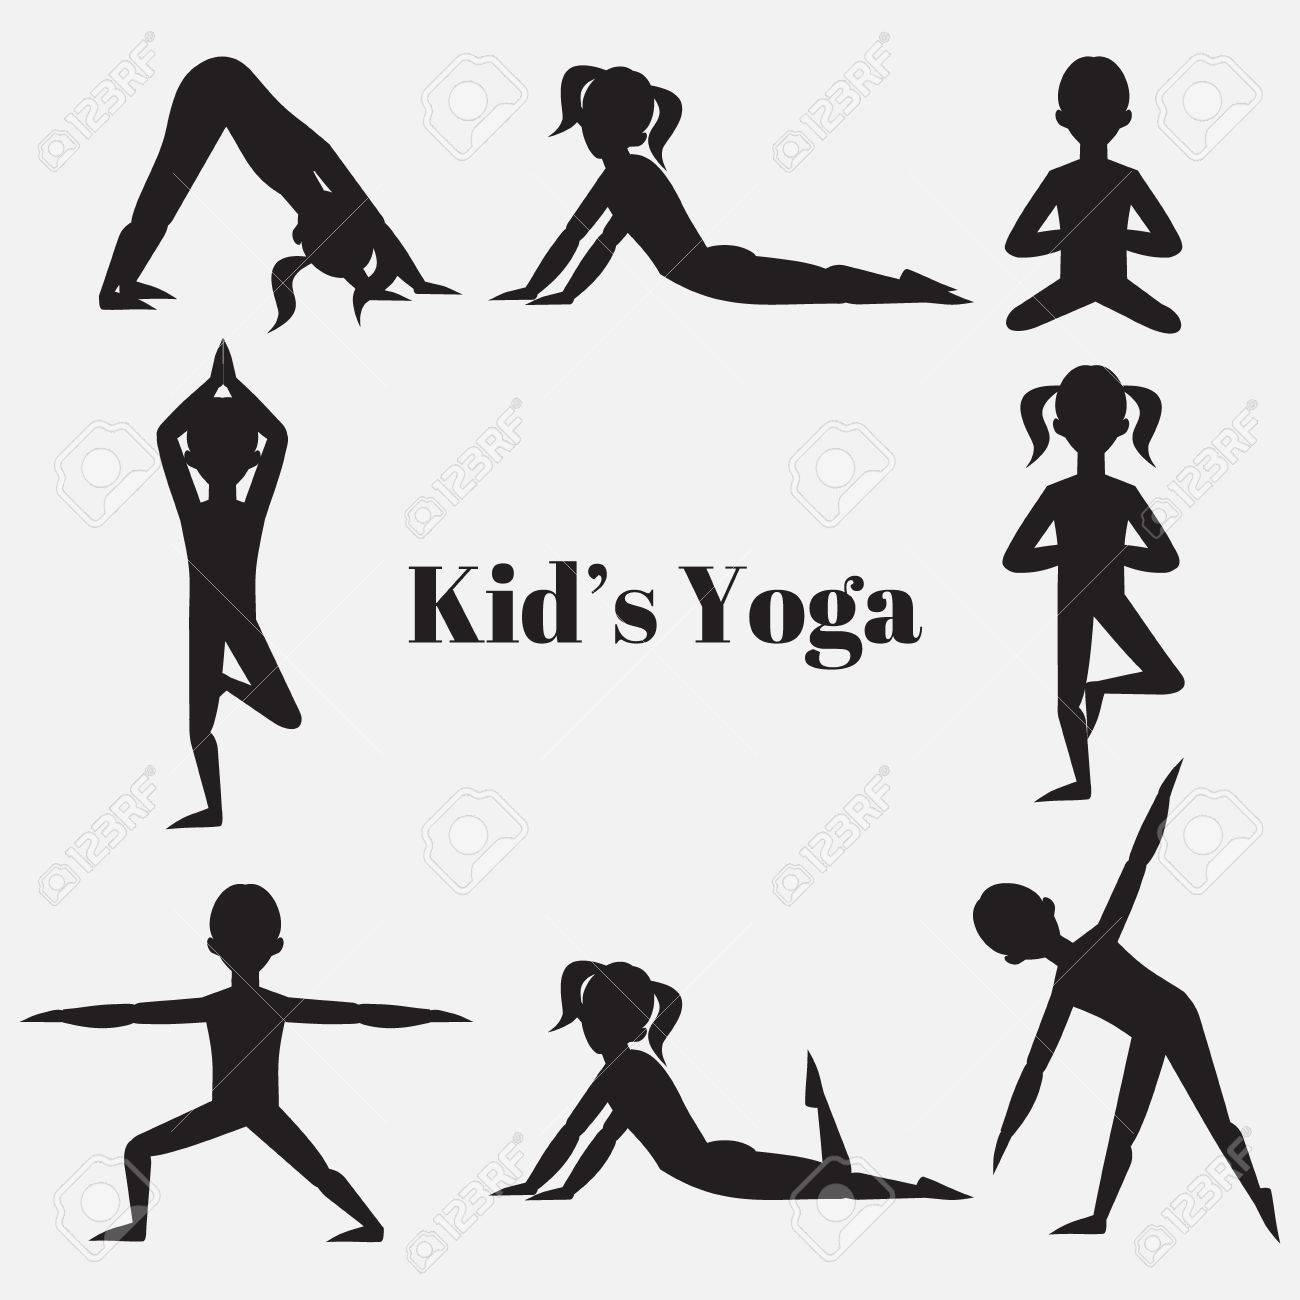 Yoga Kids Silhouette Set Gymnastics For Children And Healthy Royalty Free Cliparts Vectors And Stock Illustration Image 55971300